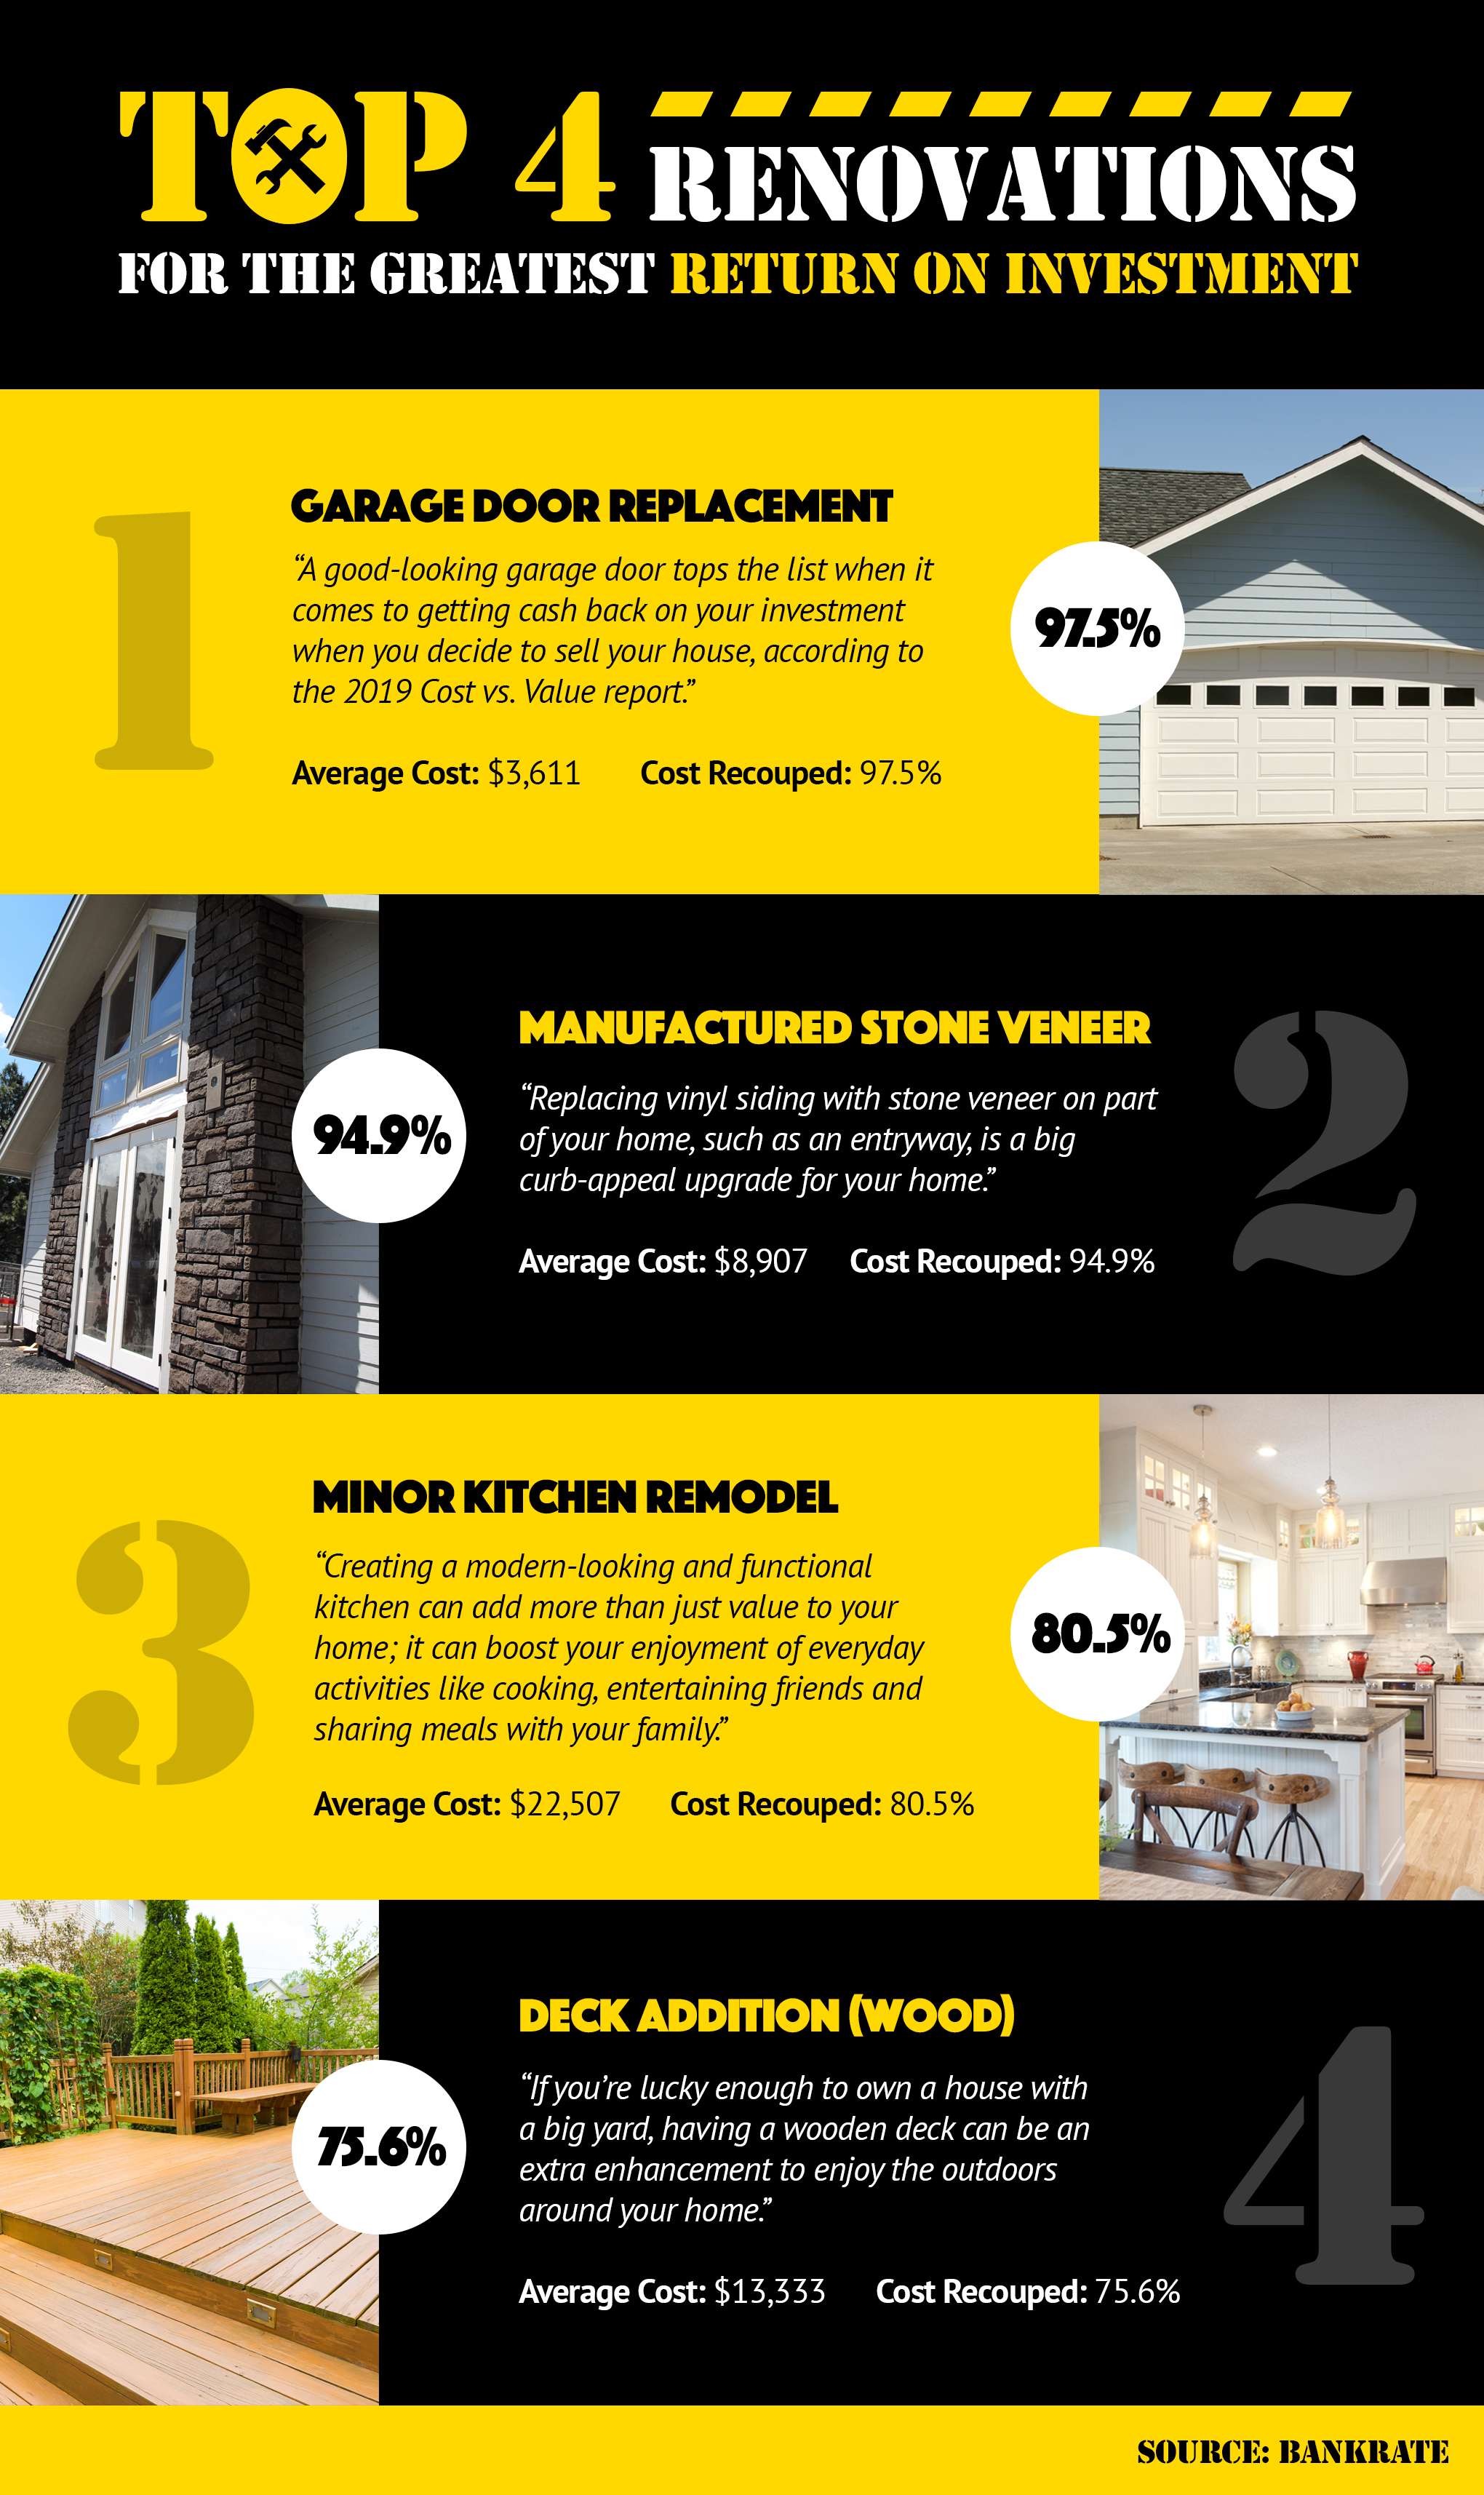 Top 4 Renovations for the Greatest Return on Investment! [INFOGRAPHIC] | MyKCM